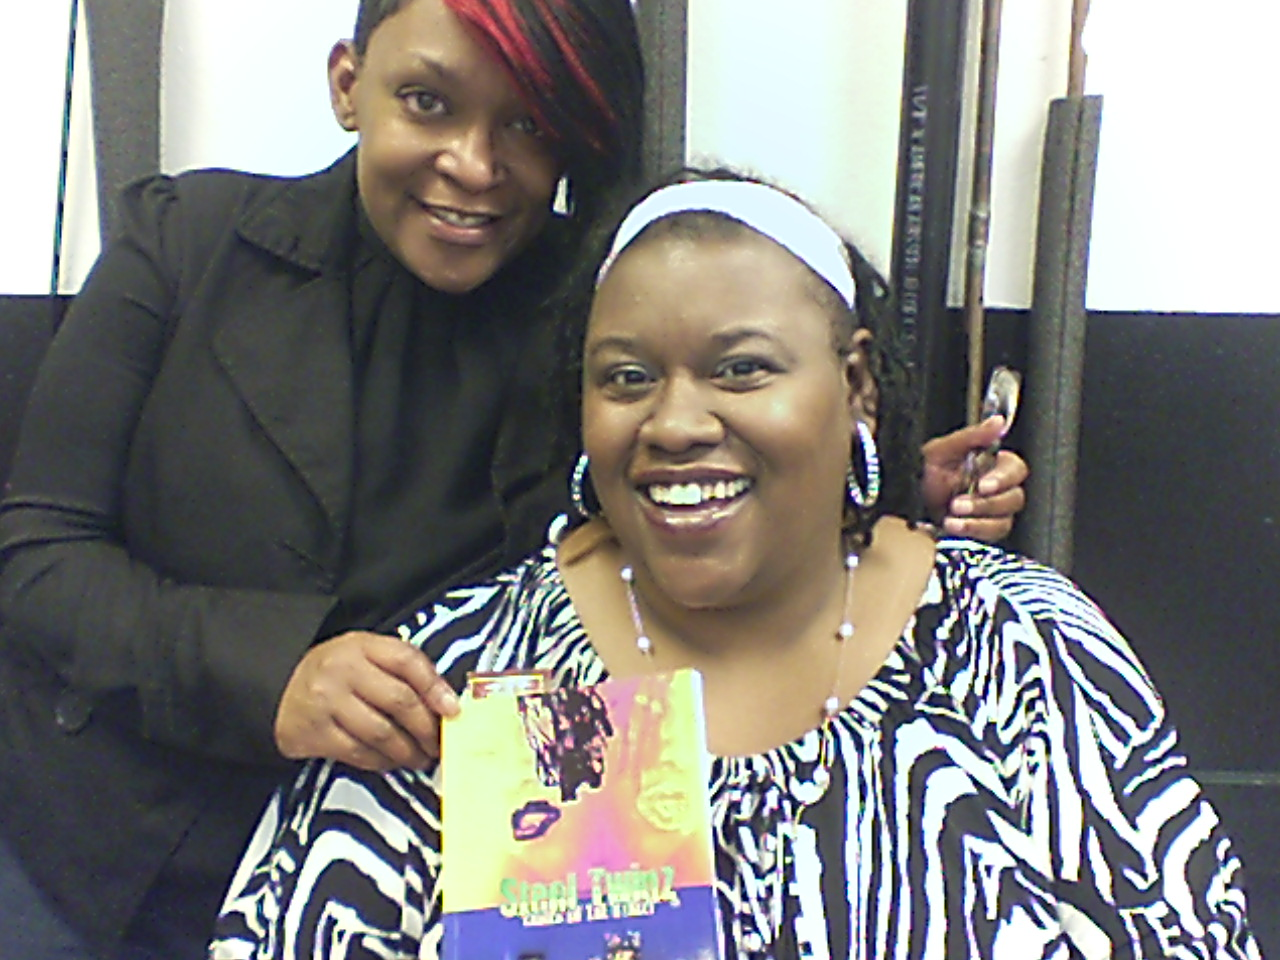 Owner, D.C.I. Hair Studio, C.E.O. of Exotic Hush  Shawna B with Author/C.E.O. of Queen Rella's Novella's Queen Rella